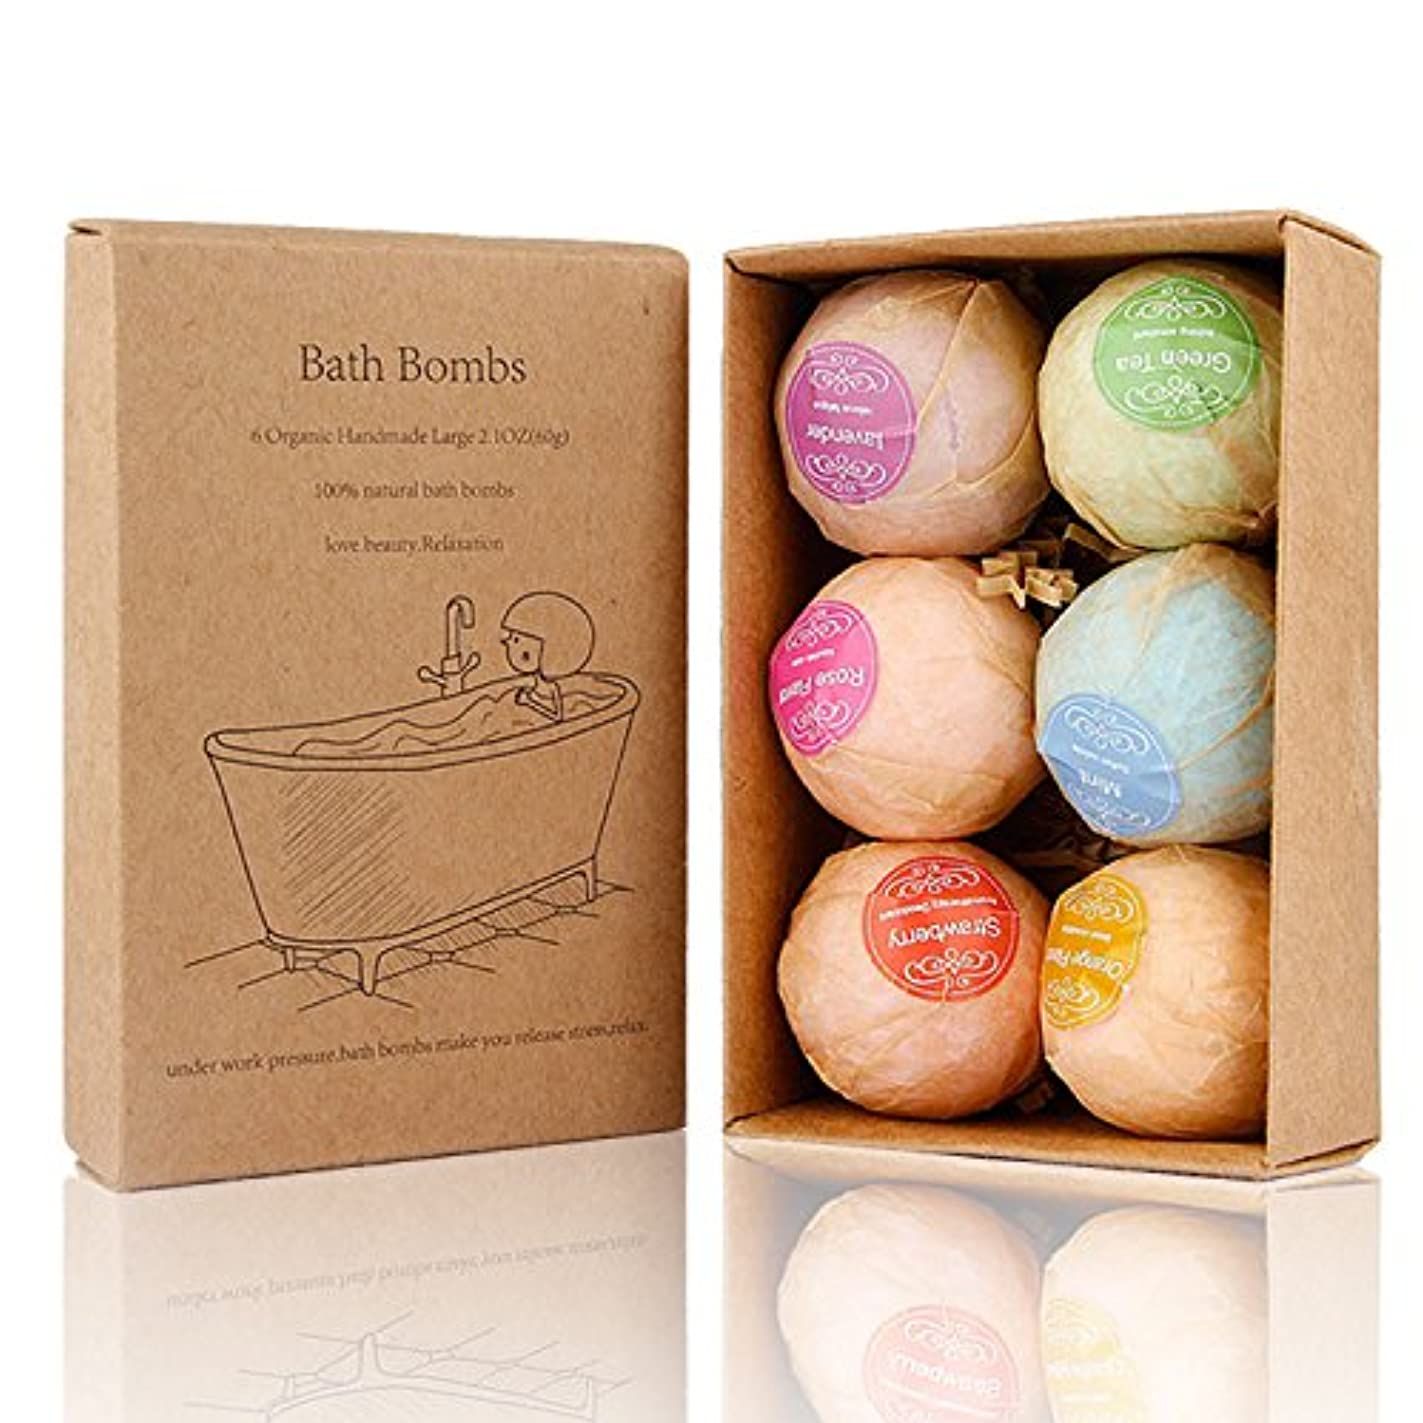 Bath Bomb, 温泡 入浴剤 ギフトセット6個入り, Perfect for Bubble & Spa Bath Ultra Lush Bath Fizzies